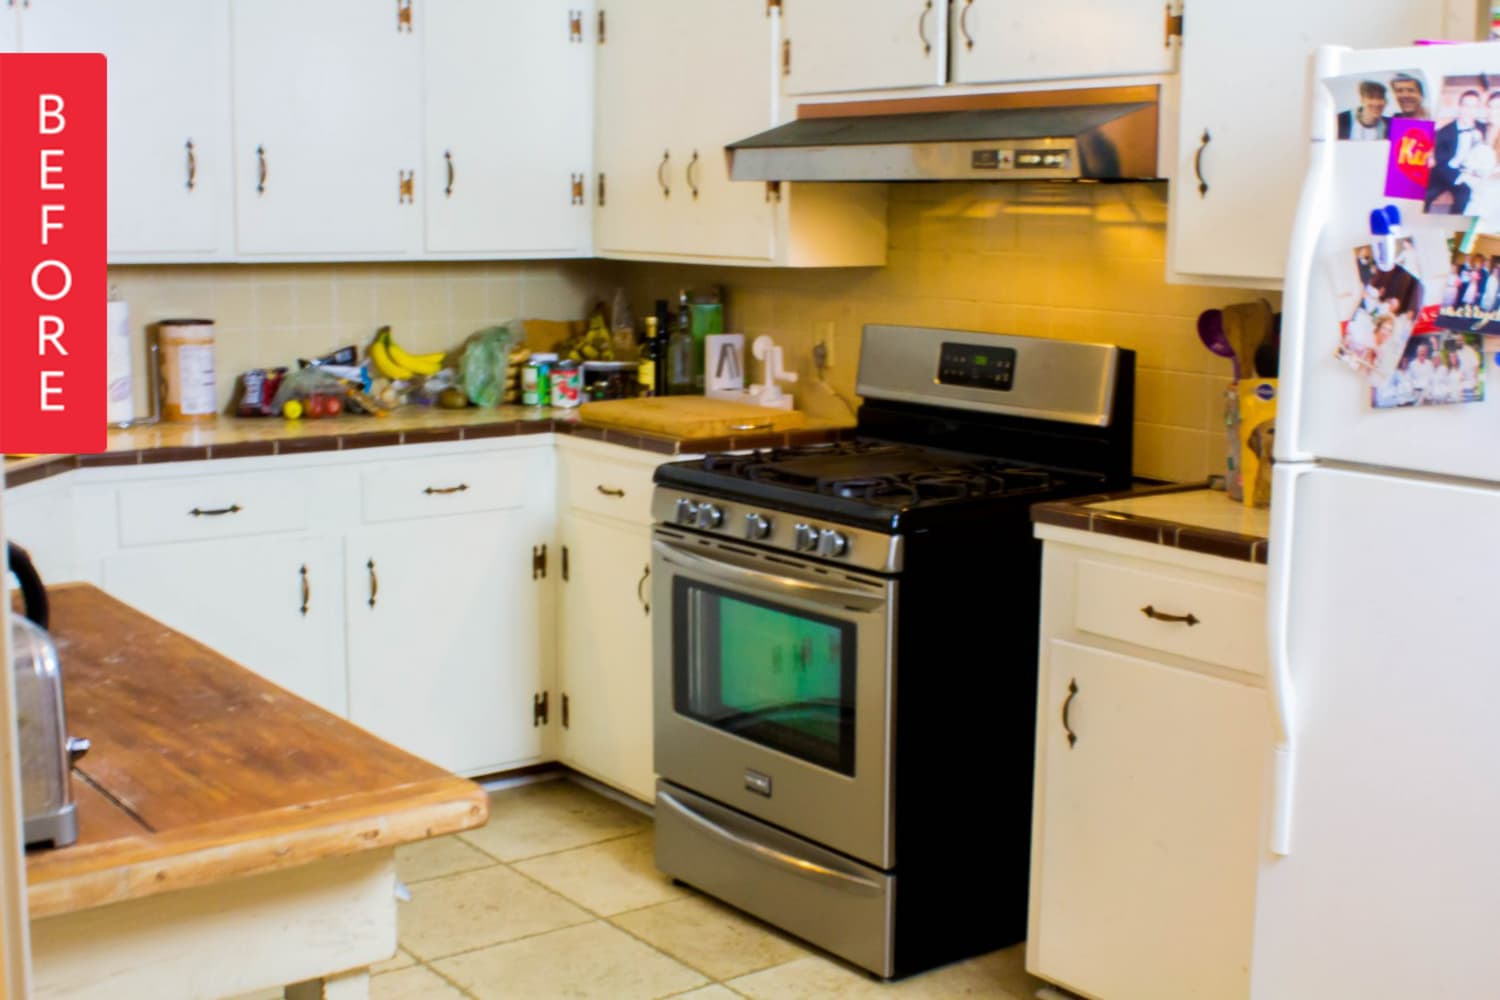 Before & After: A Delicious (Mostly) DIY Kitchen Upgrade